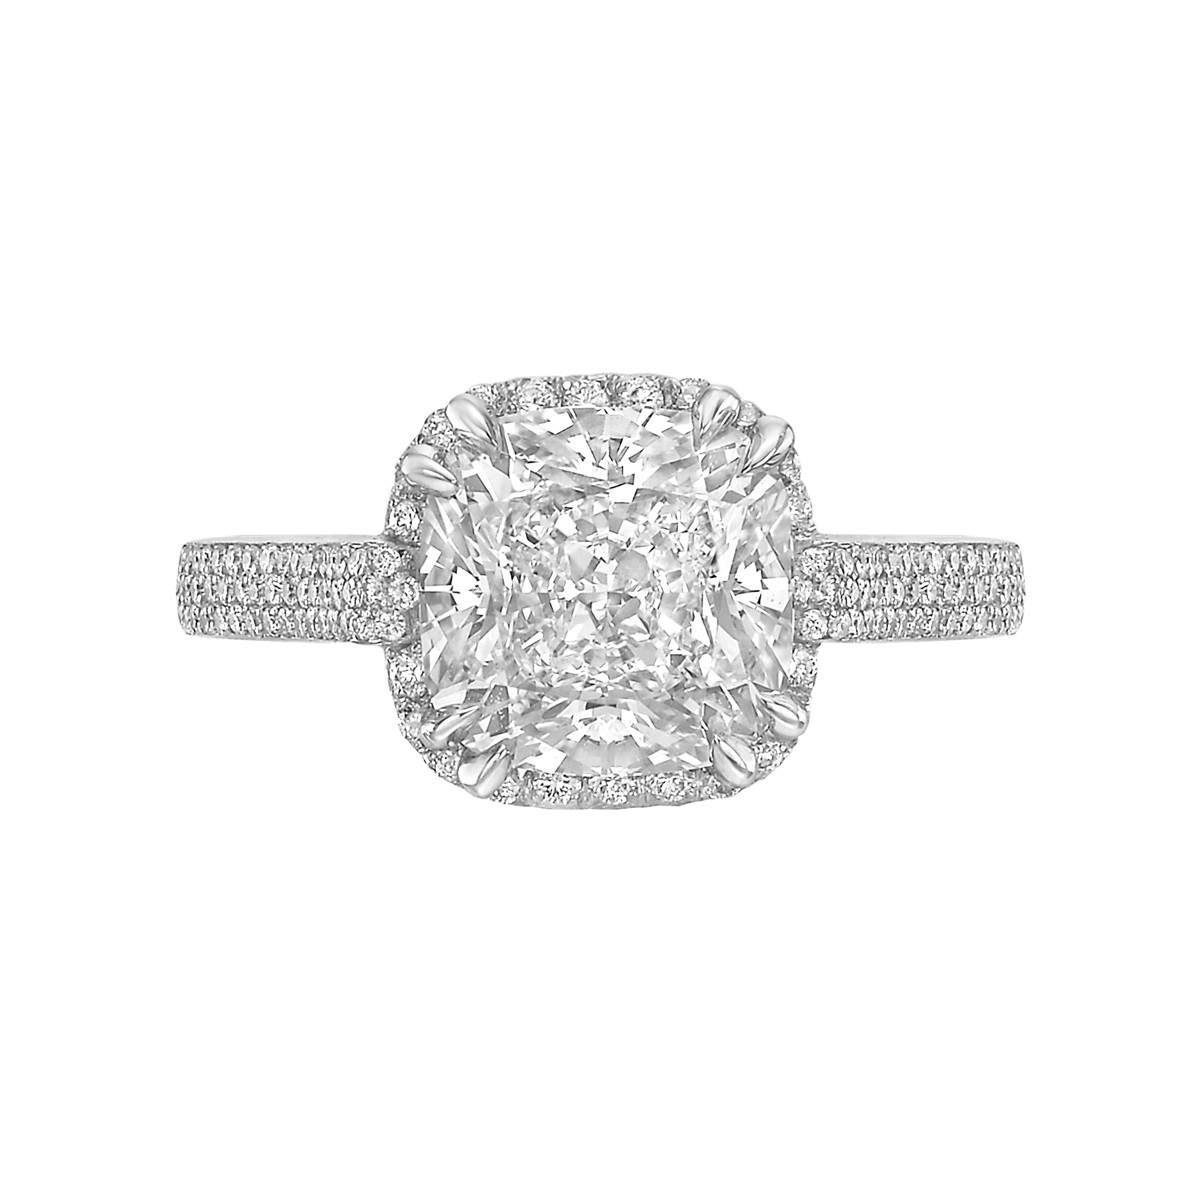 3.11 Carat Cushion-Cut Diamond Ring